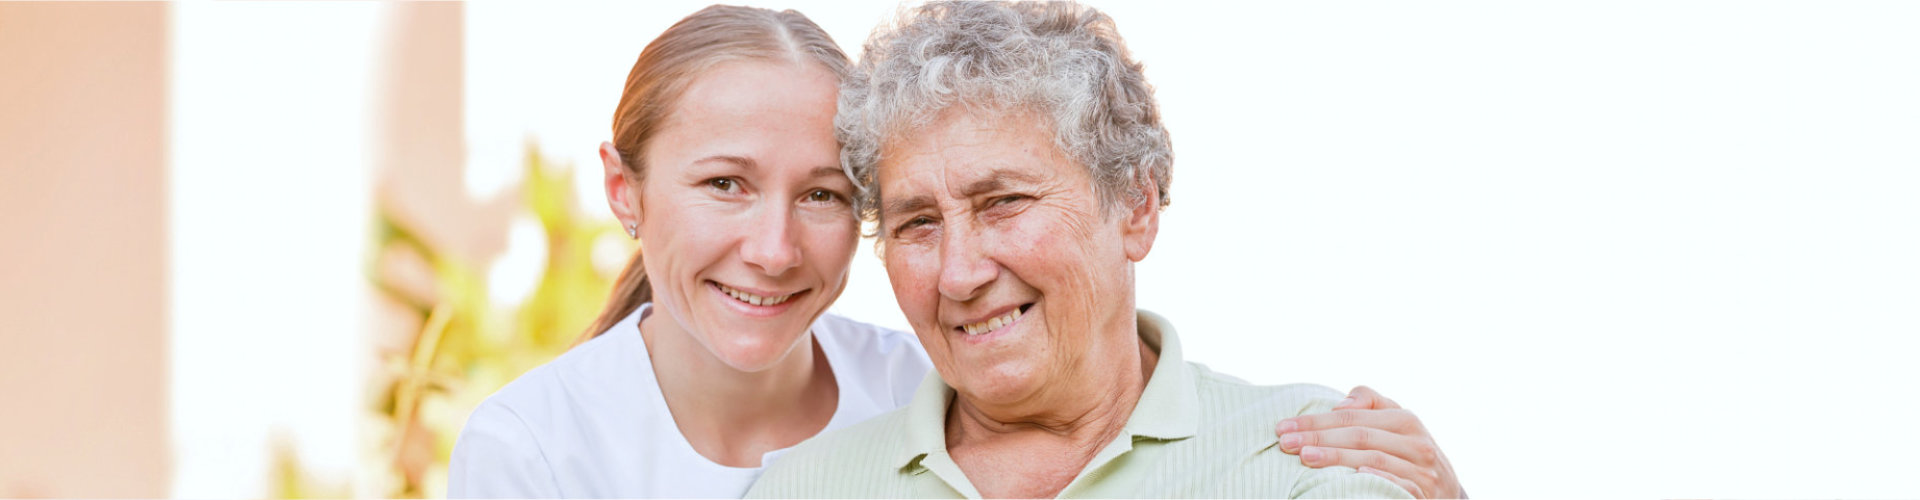 caregiver woman and senior woman are smiling